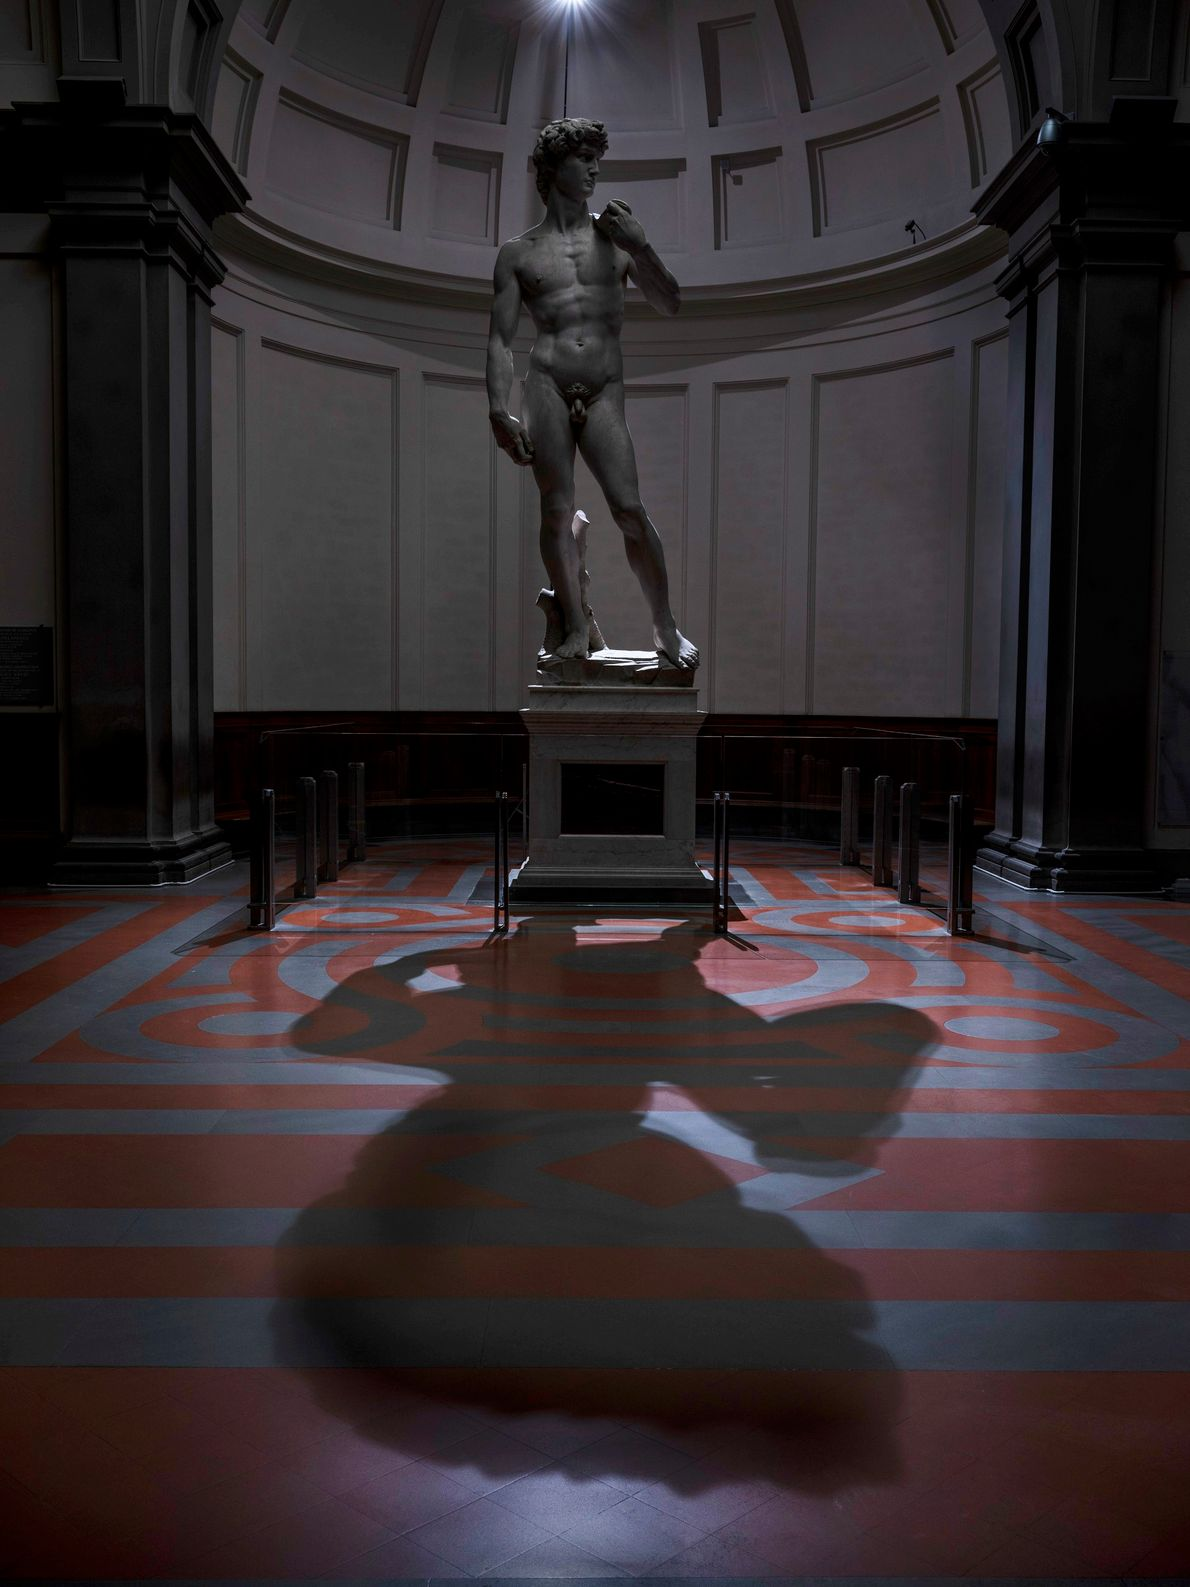 Michelangelo's iconic David (1504), poses alone with his shadow in Florence's Galleria dell'Accademia.